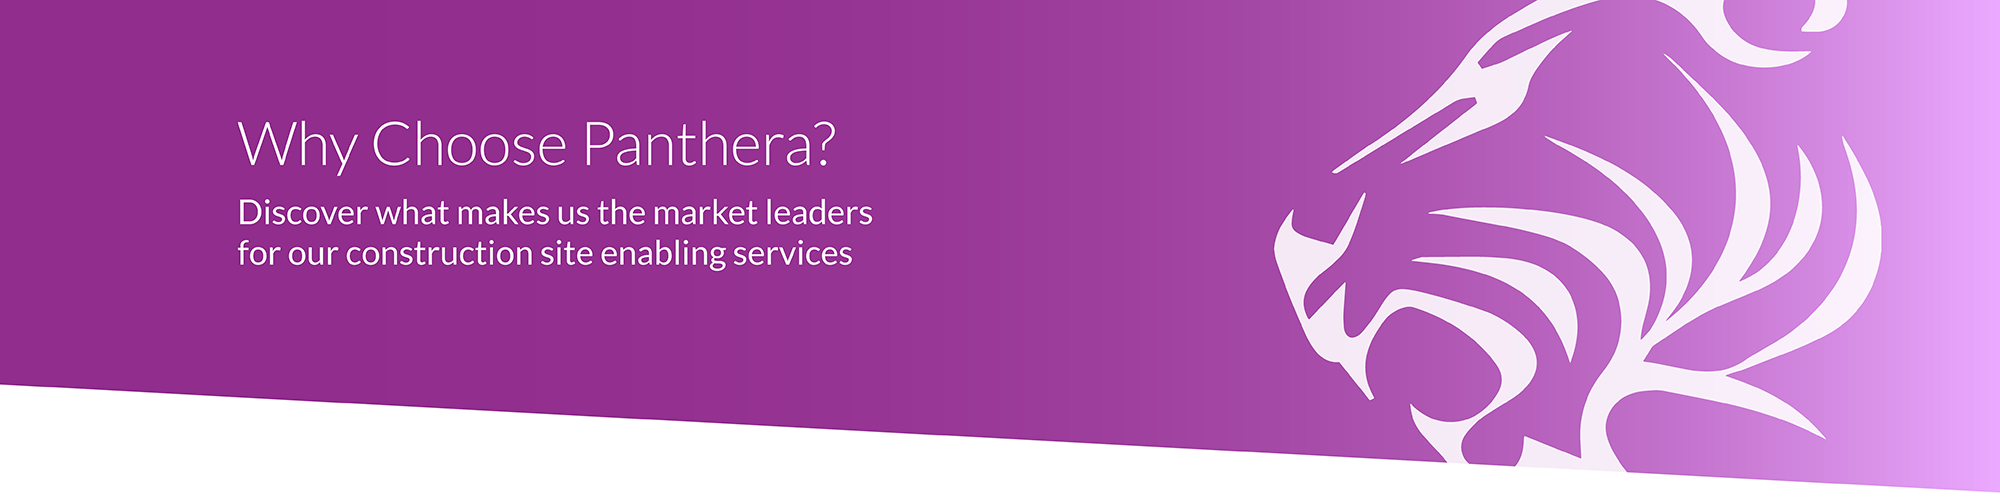 Why Choose Panthera? Discover what makes us the market leaders for our construction site enabling services